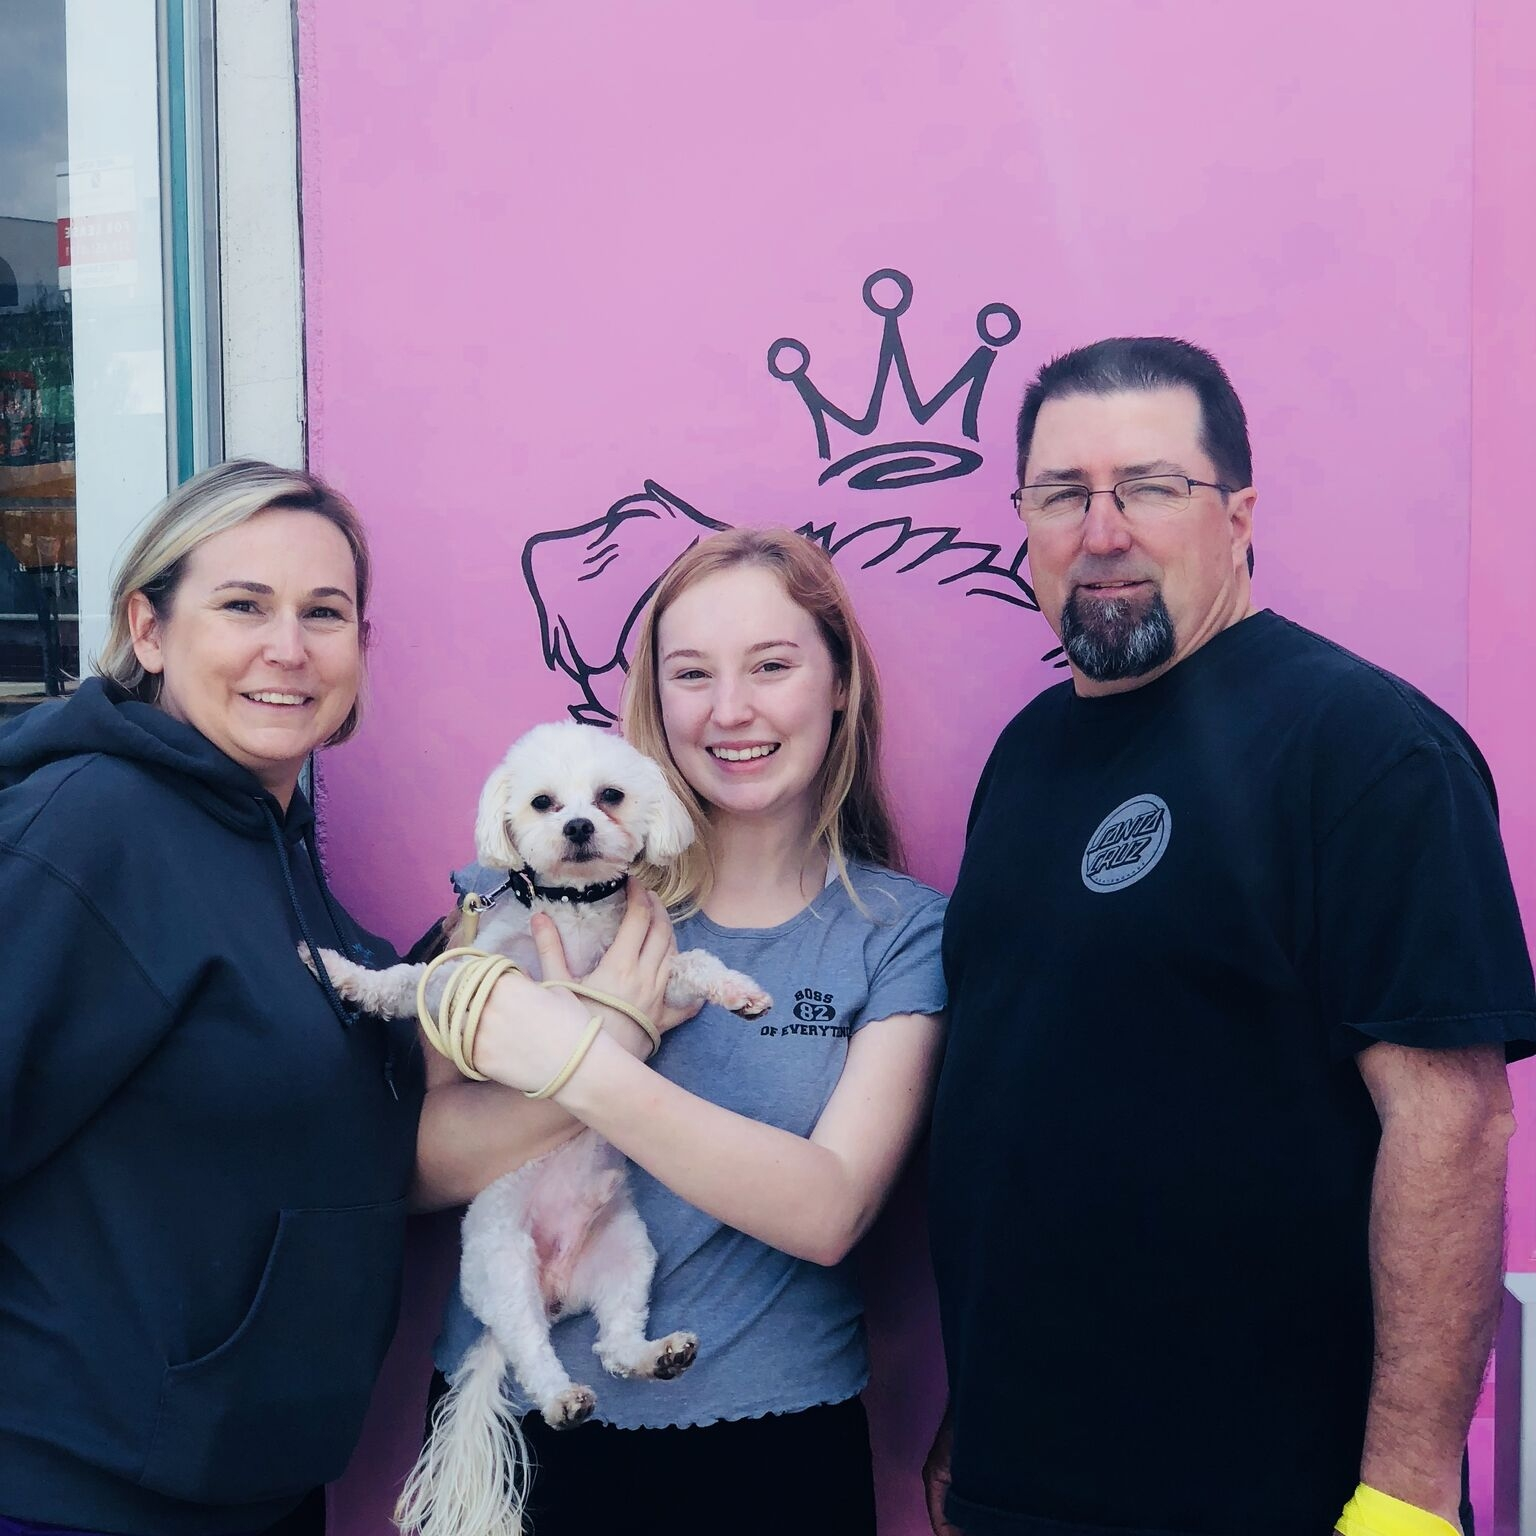 Rupert came to us from a shelter with a cone and a bunch of matted fur. He is now smiling and ready for his new life with his amazing family! We love you Rupert!